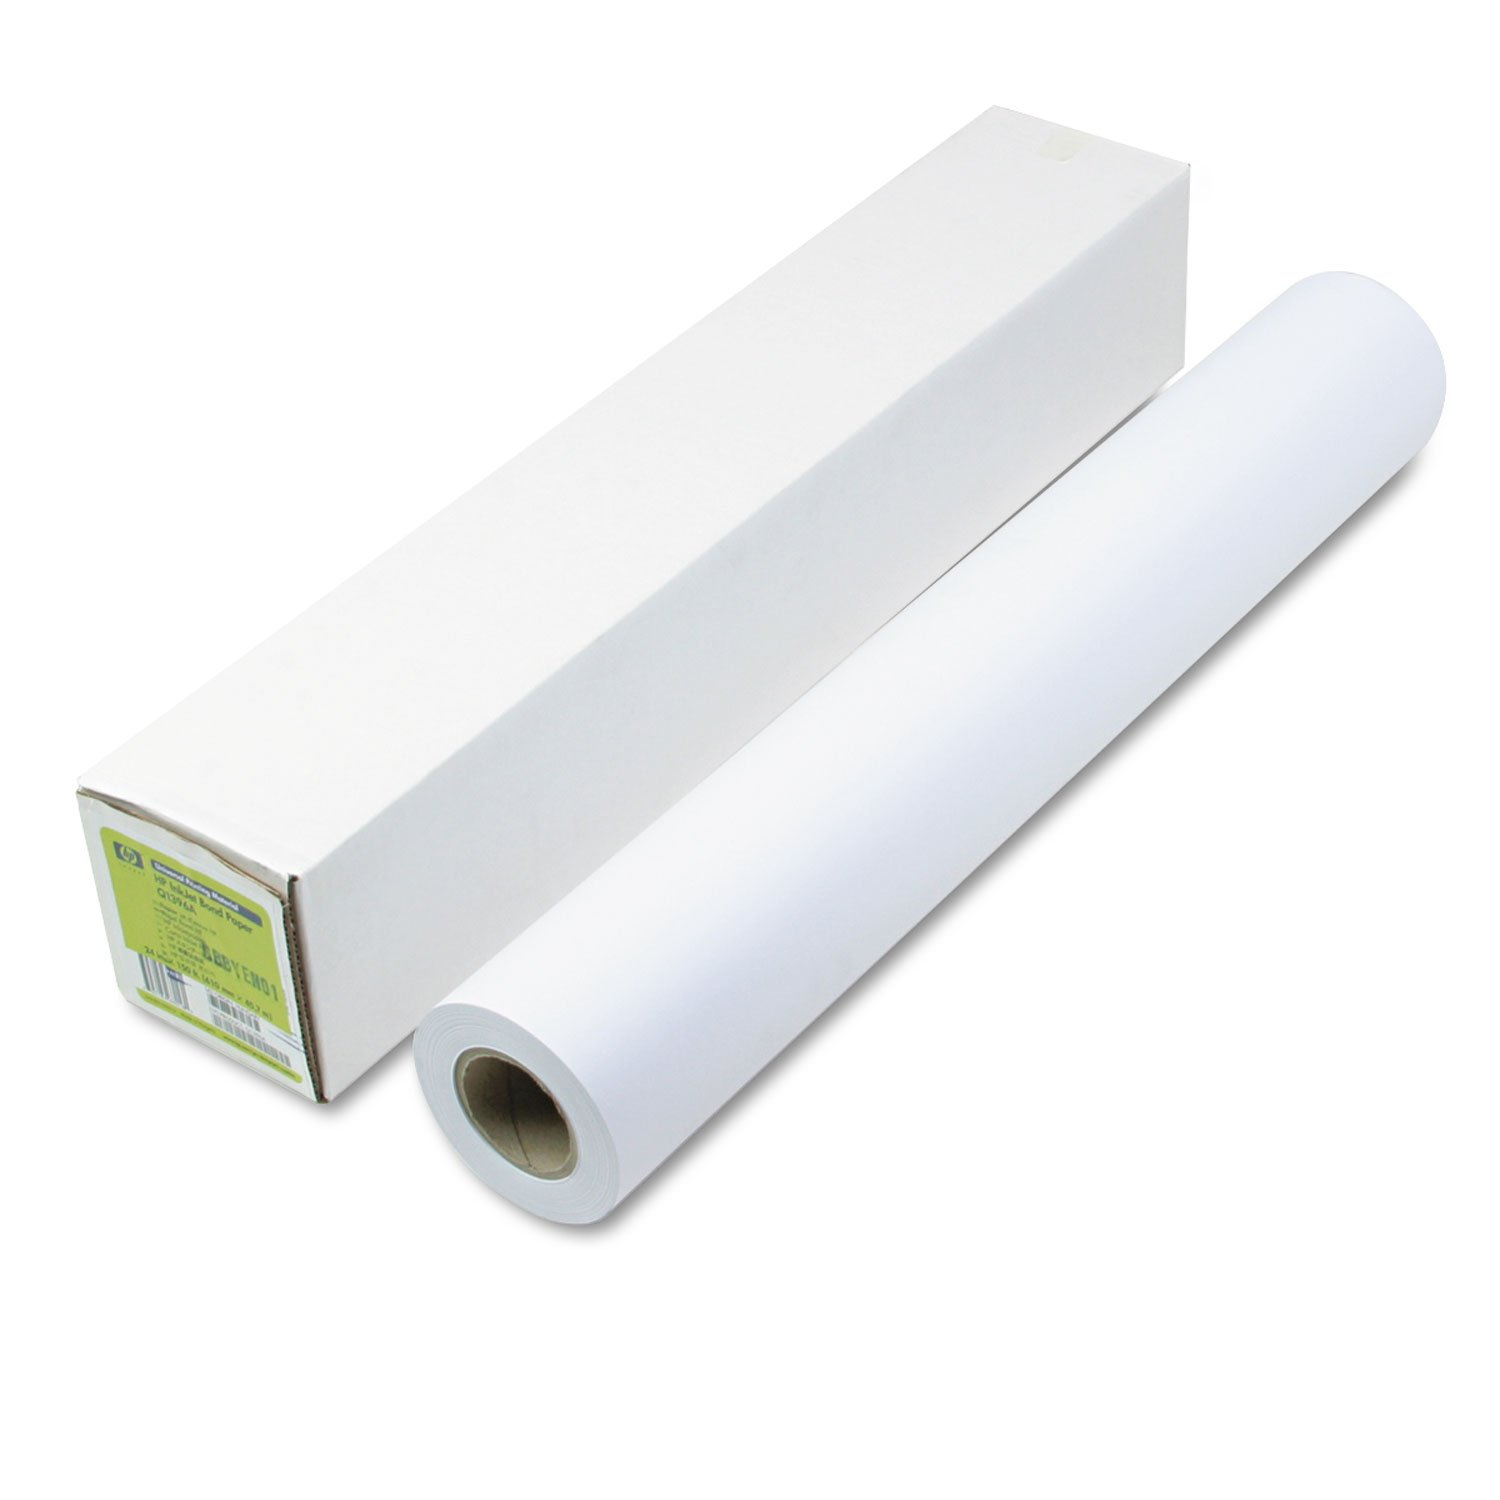 HP Q1396A Universal Bond Paper,24''x150',21lb,96 GE/110 ISO,White by HP